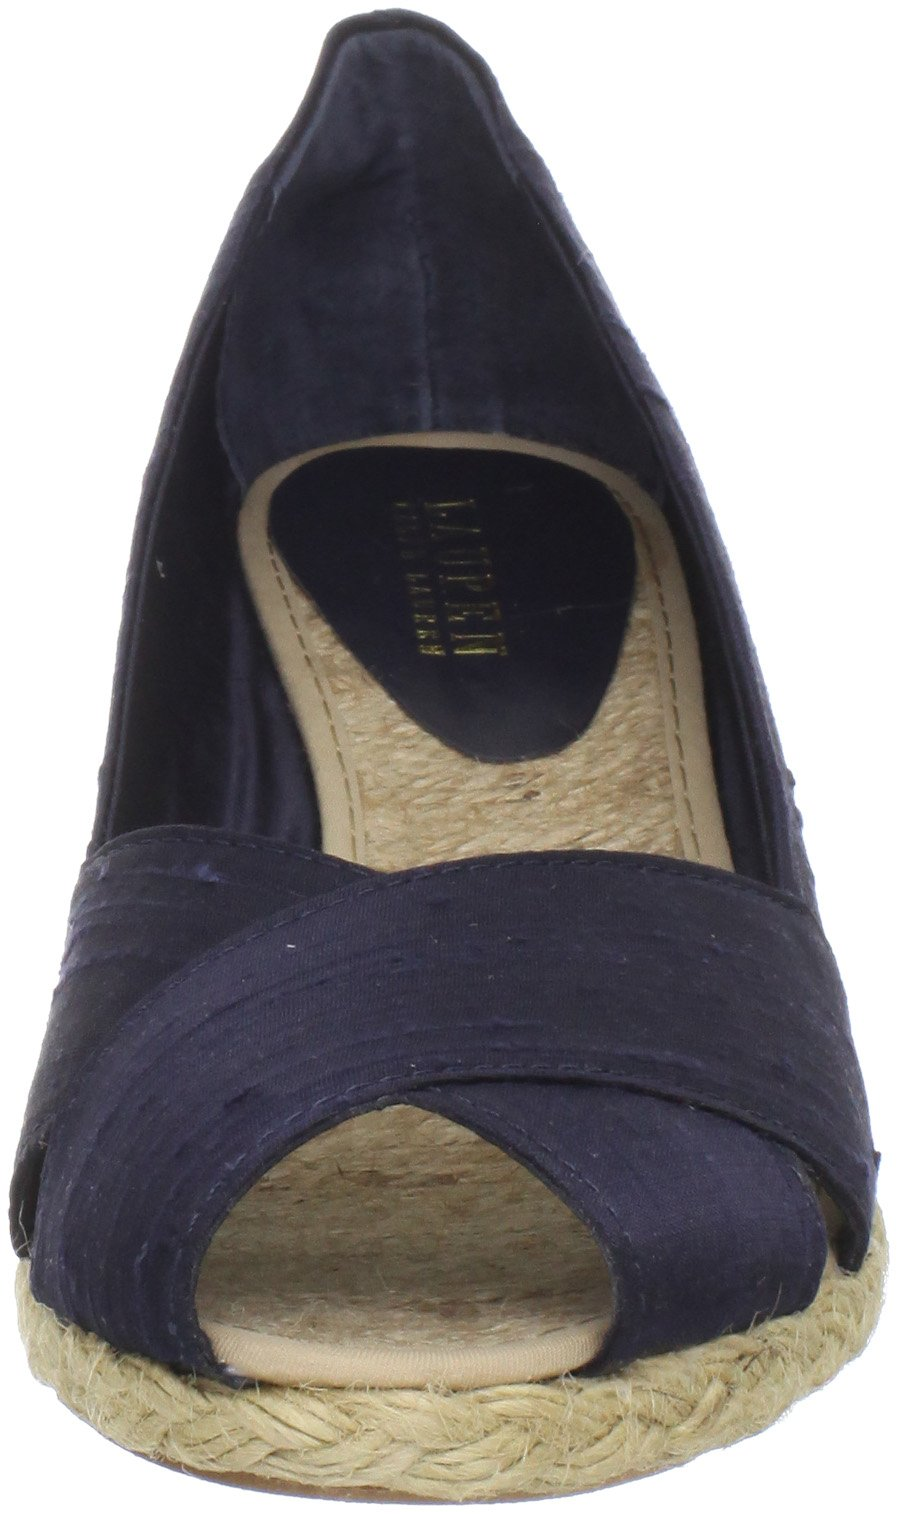 bde5b9ad2e6 Ralph Lauren Women's Cecilia Wedge Sandal, Dark Navy, 8.5 B(M) US ...